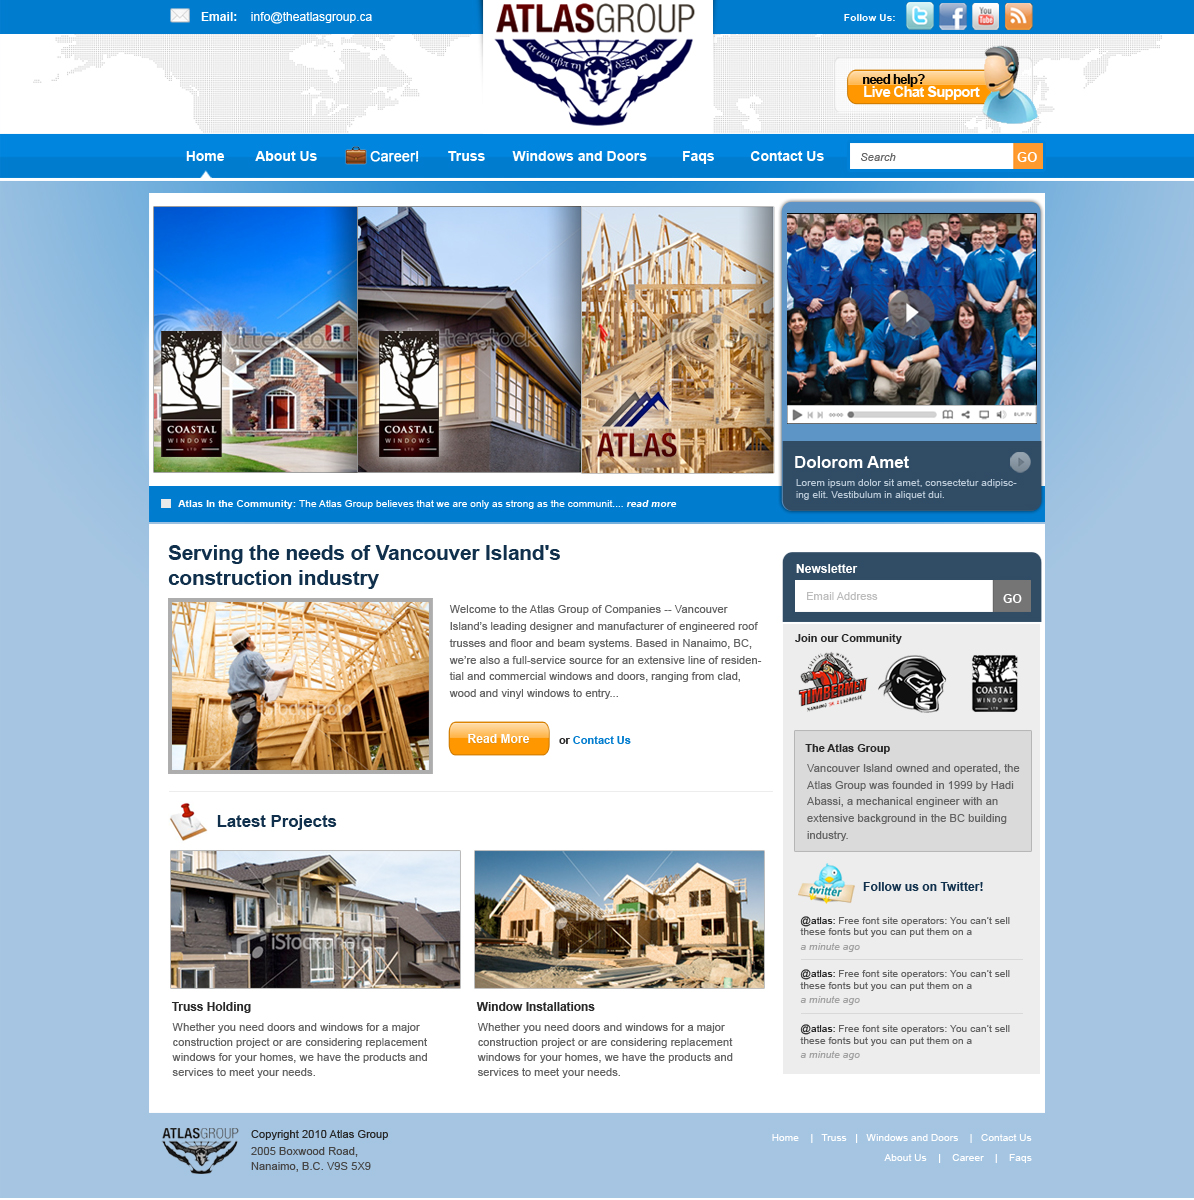 Web Page Design by rockpinoy - Entry No. 70 in the Web Page Design Contest The Atlas Group Website.